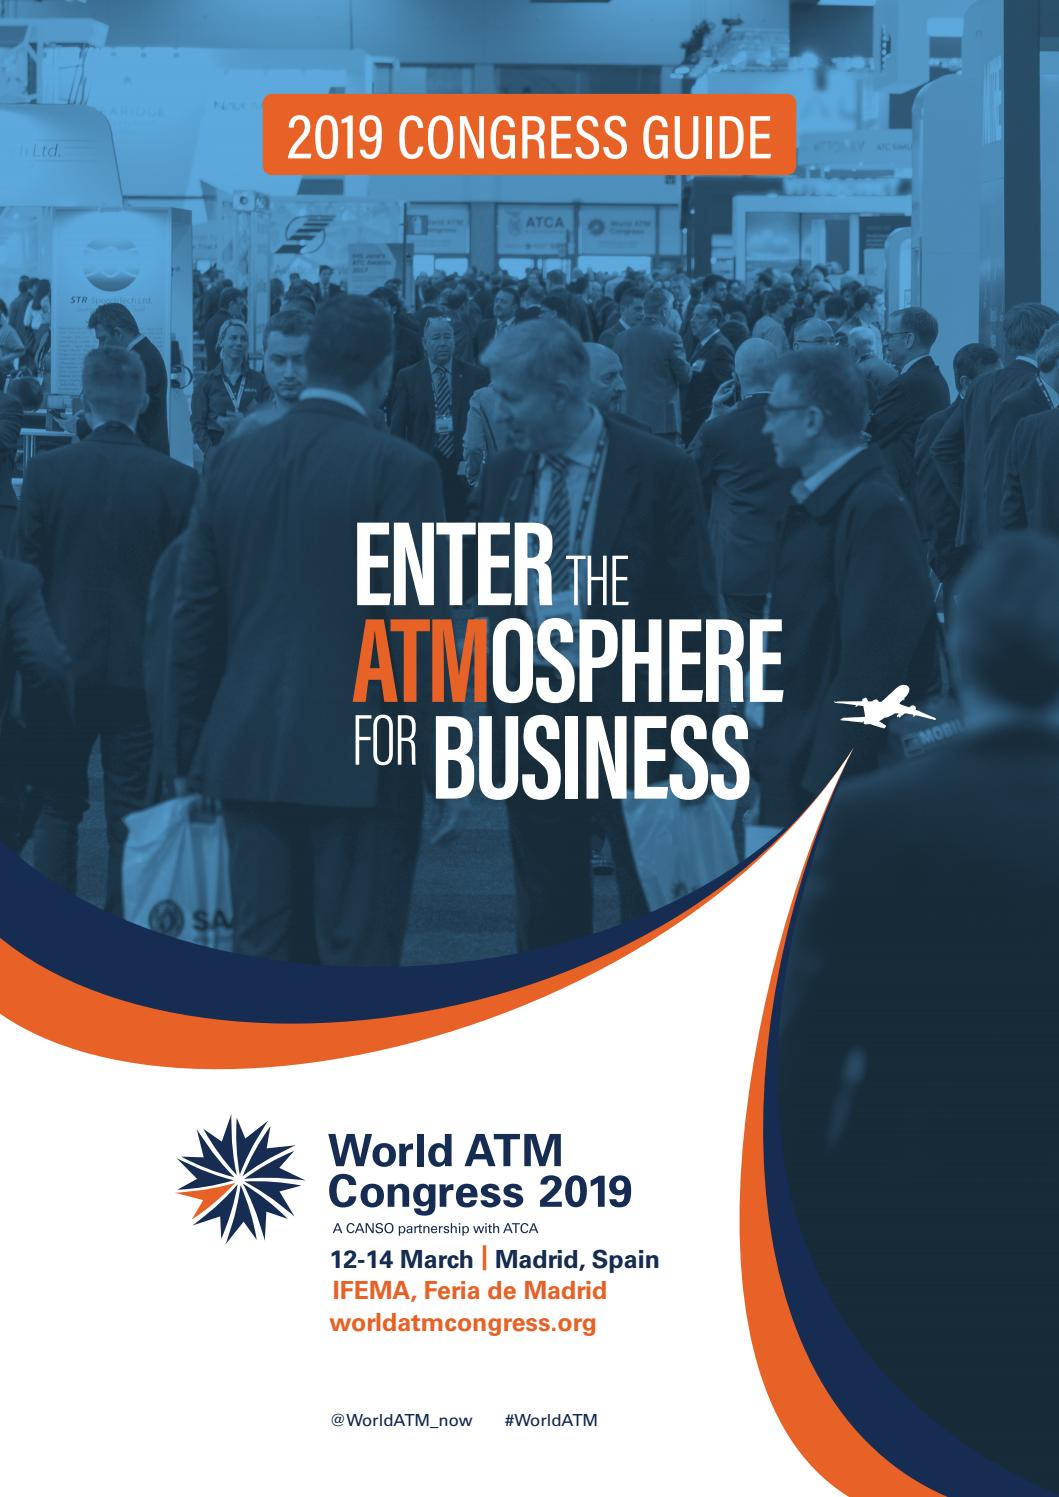 World ATM Congress 2019 Guide by World ATM Congress - issuu